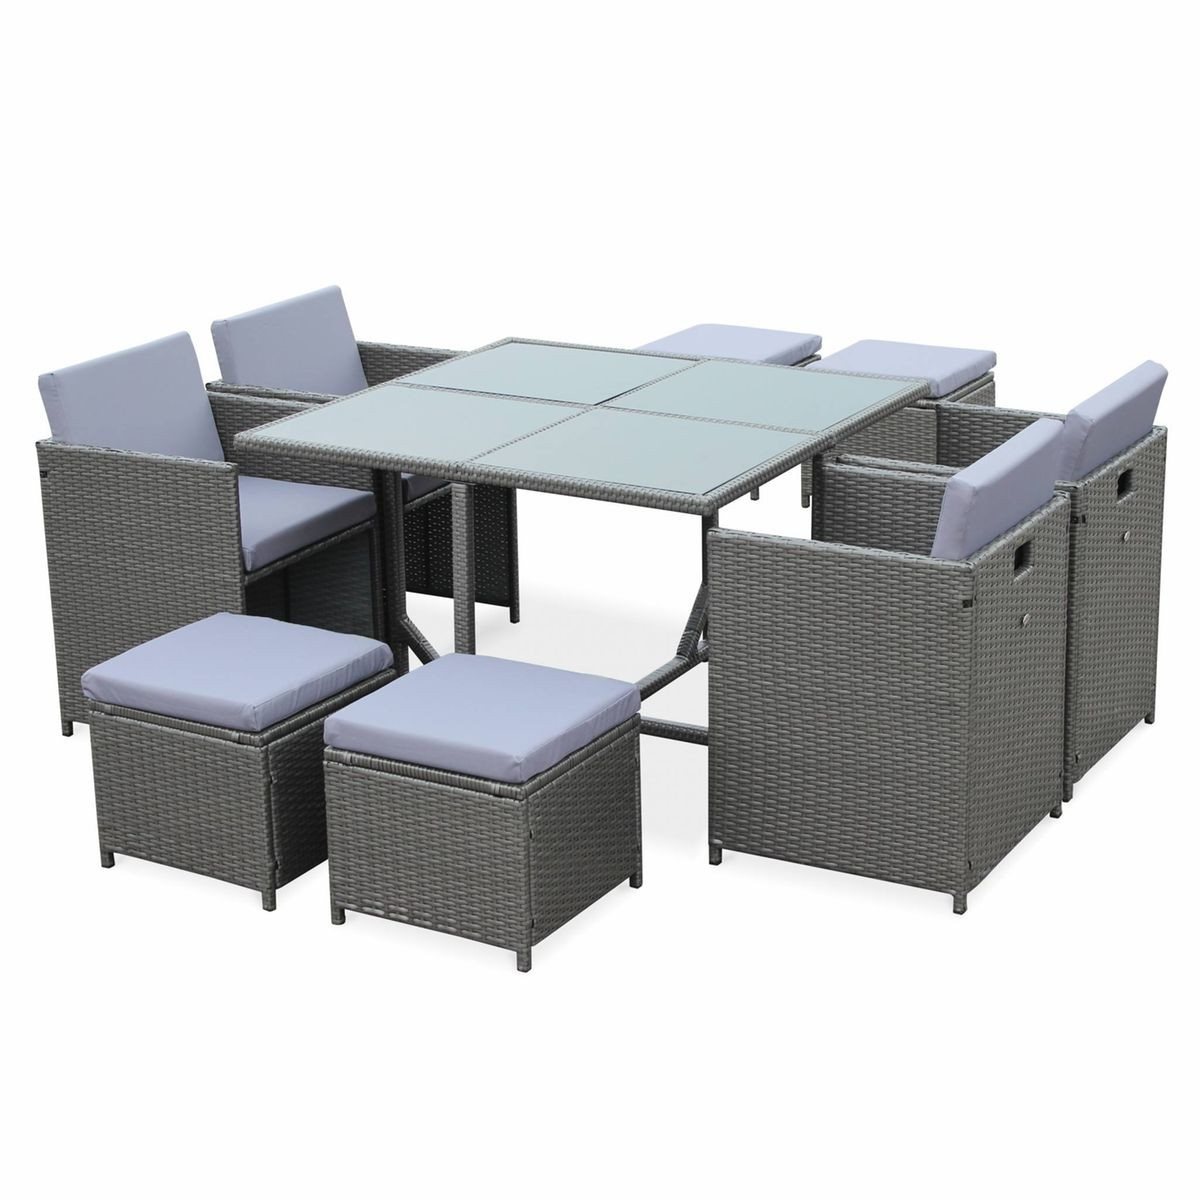 Salon De Jardin Cubo Gris Table En Resine Tressee 4 A 8 Places